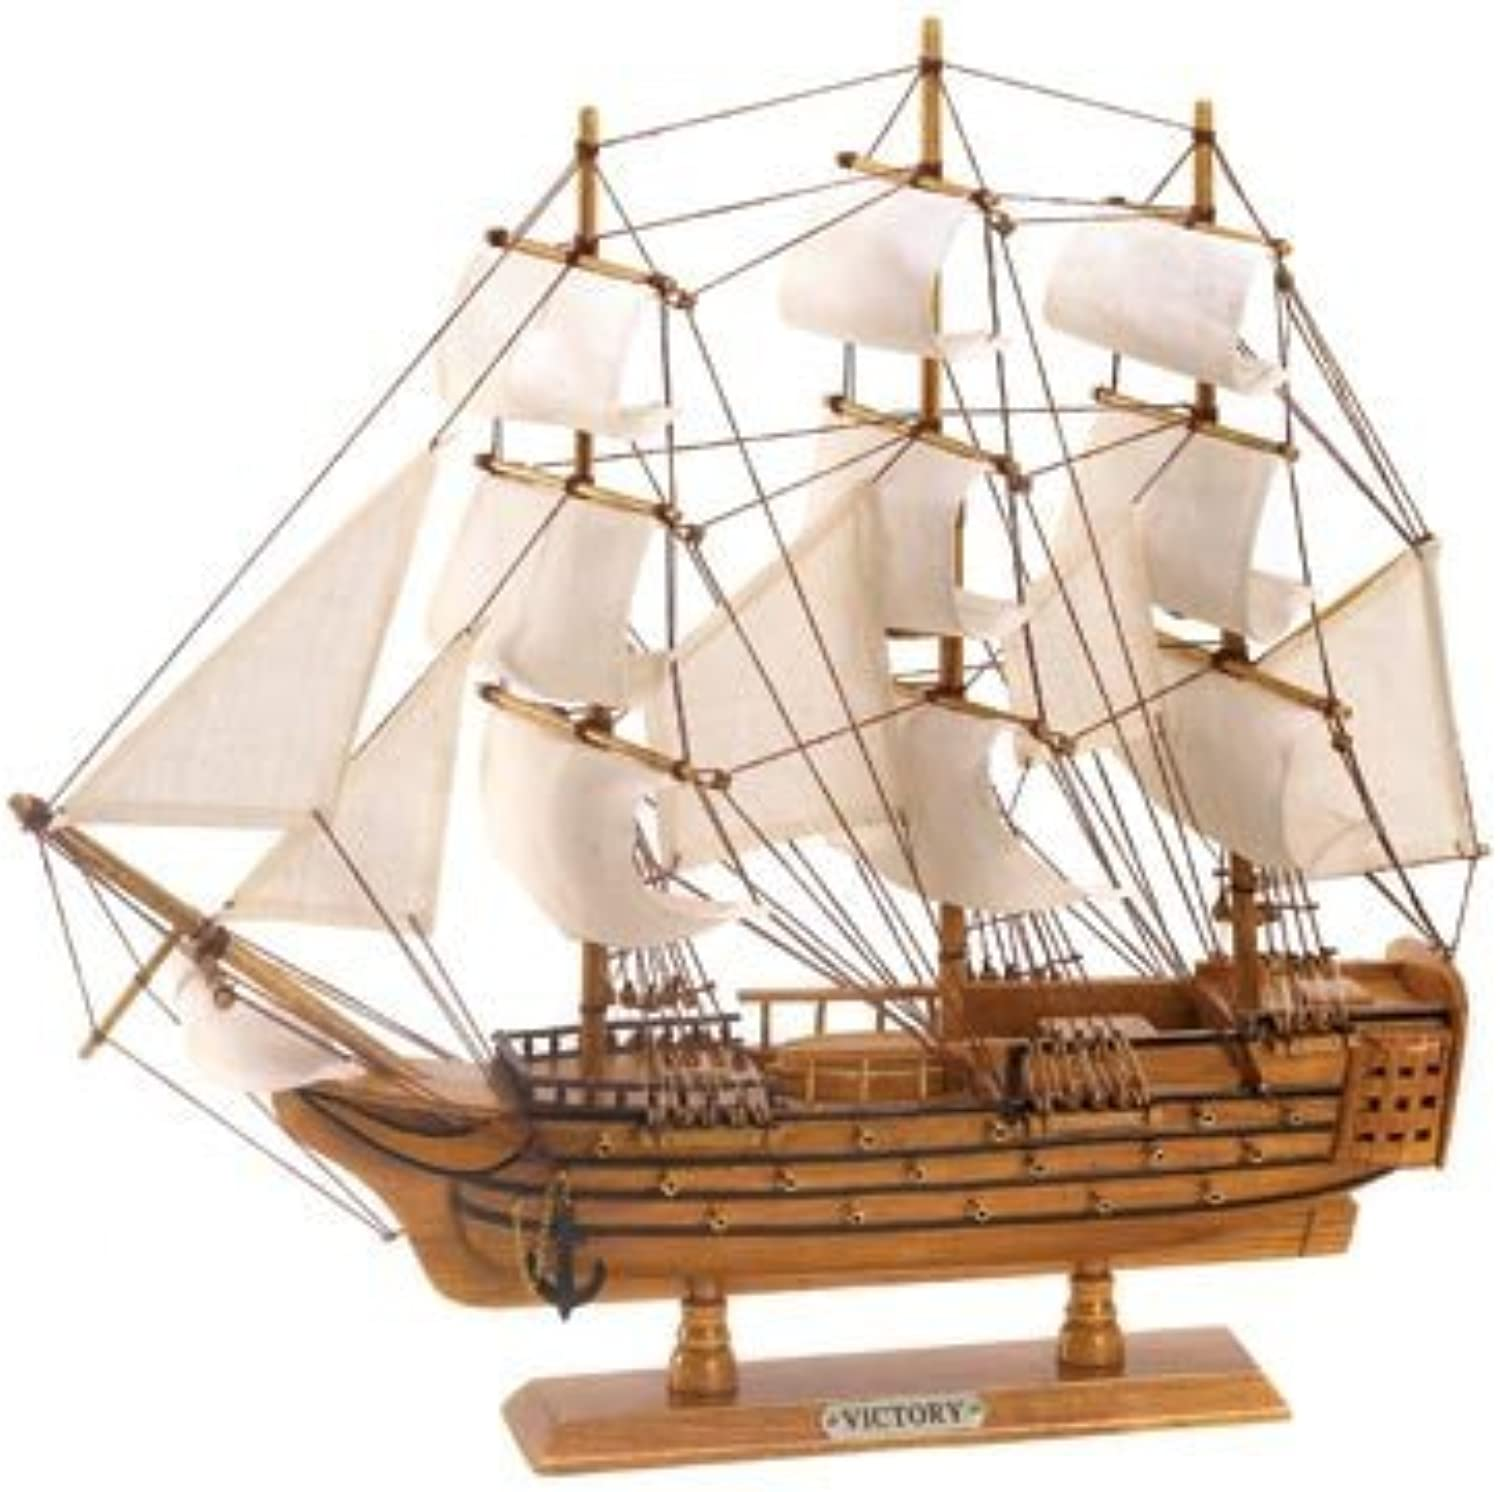 selección larga Hms Victory Ship Model Lifelike Schooner Nautical Boat by by by Furniture Creations  venta con alto descuento